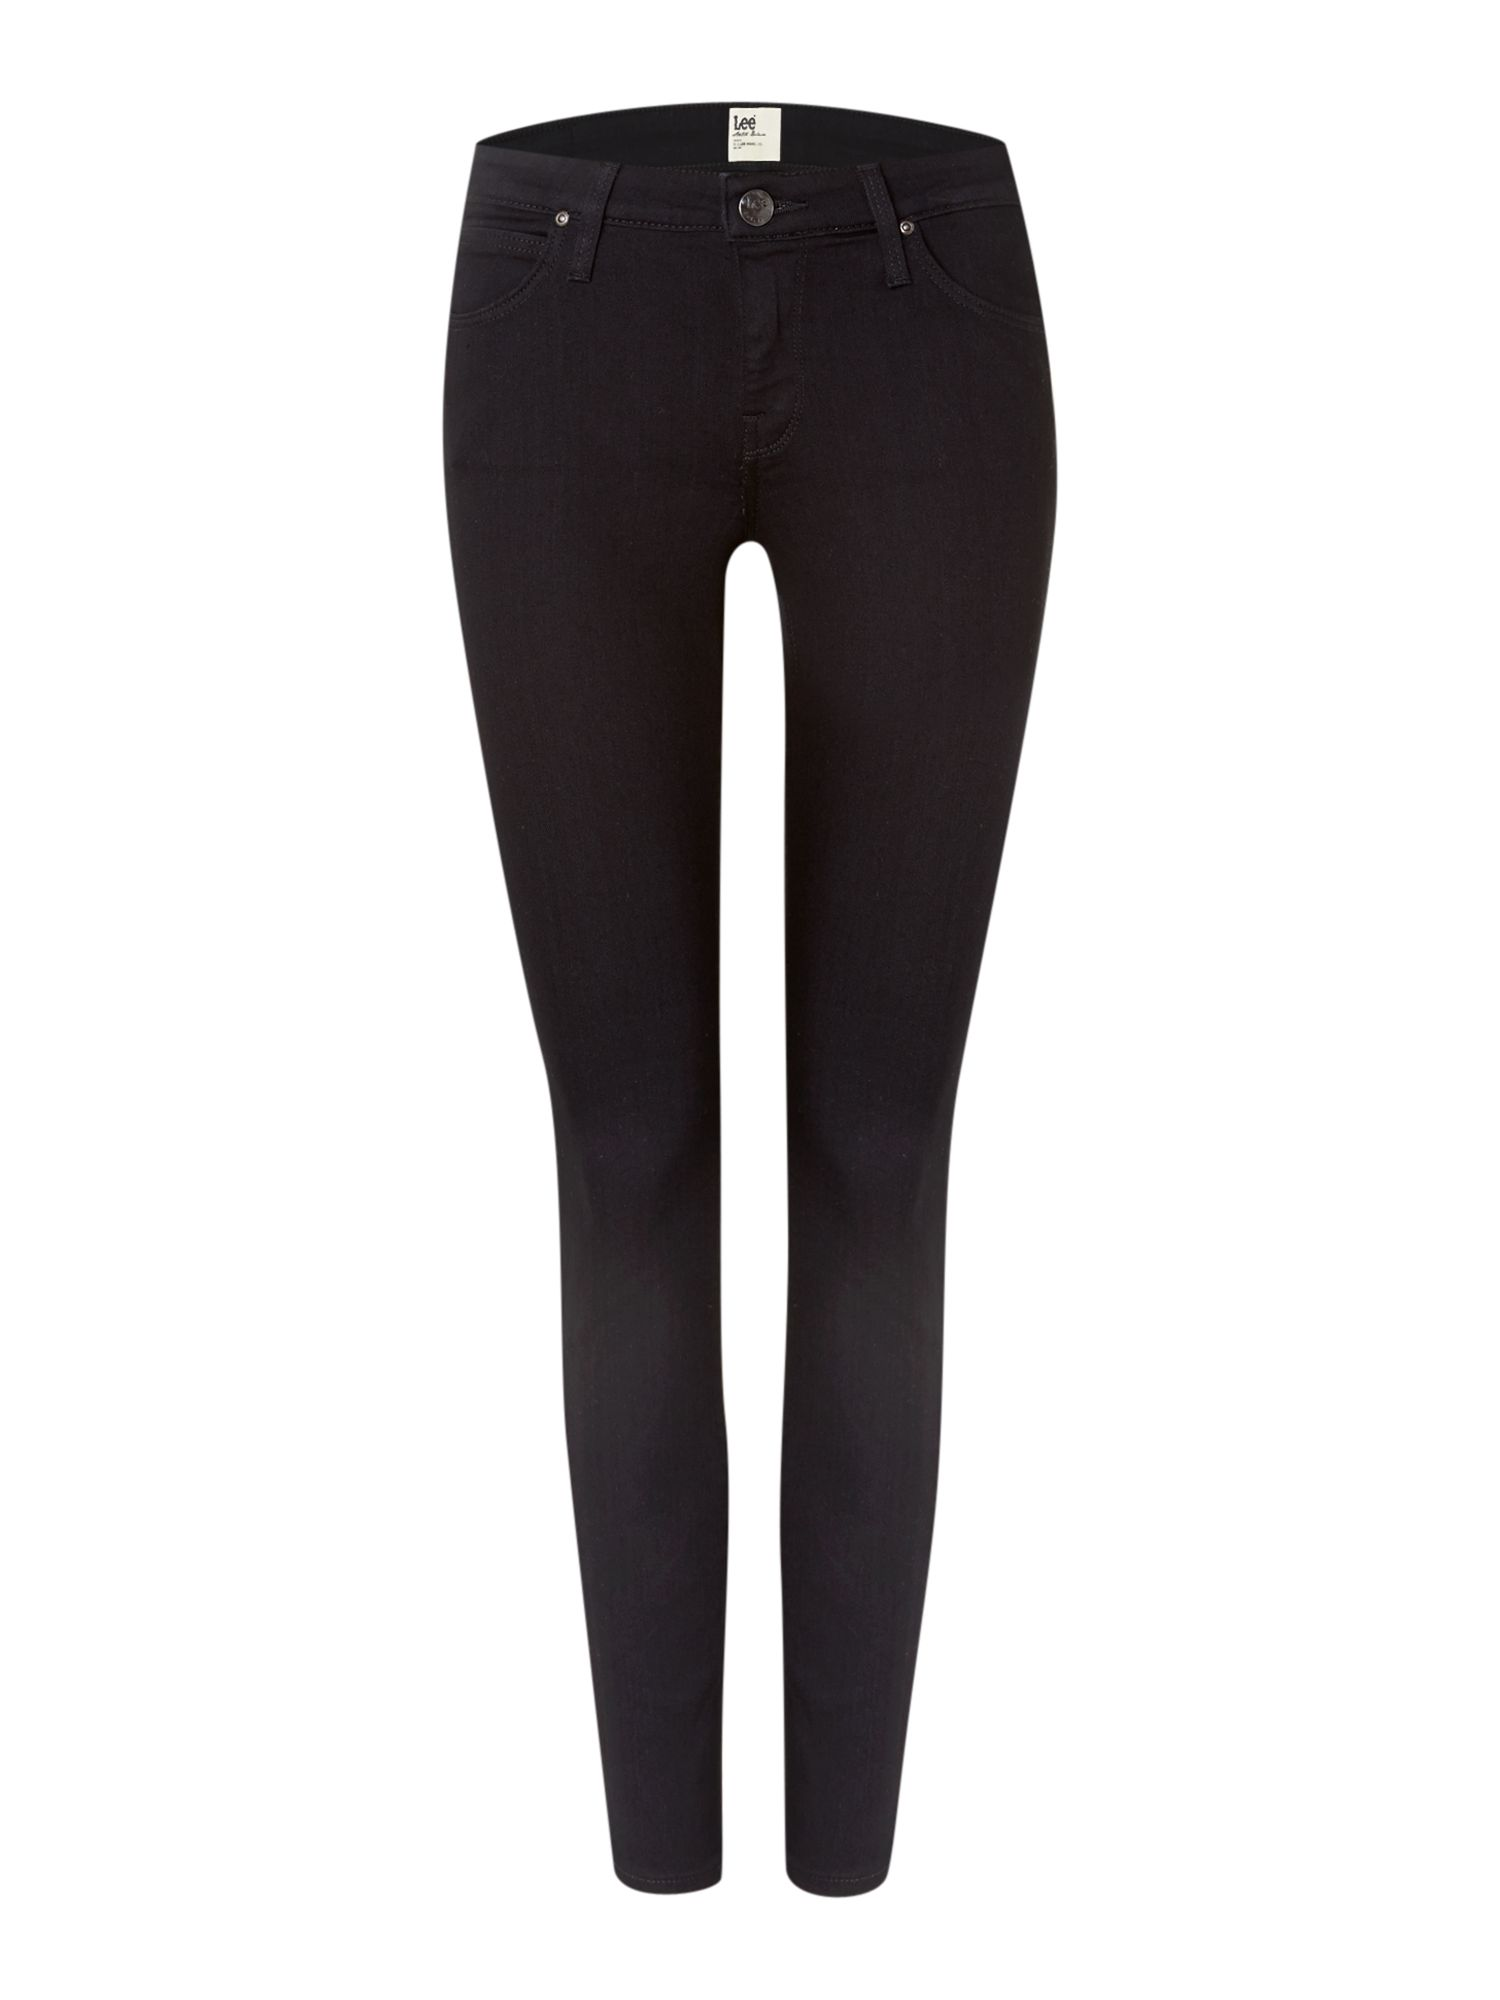 Scarlett skinny jeans in black